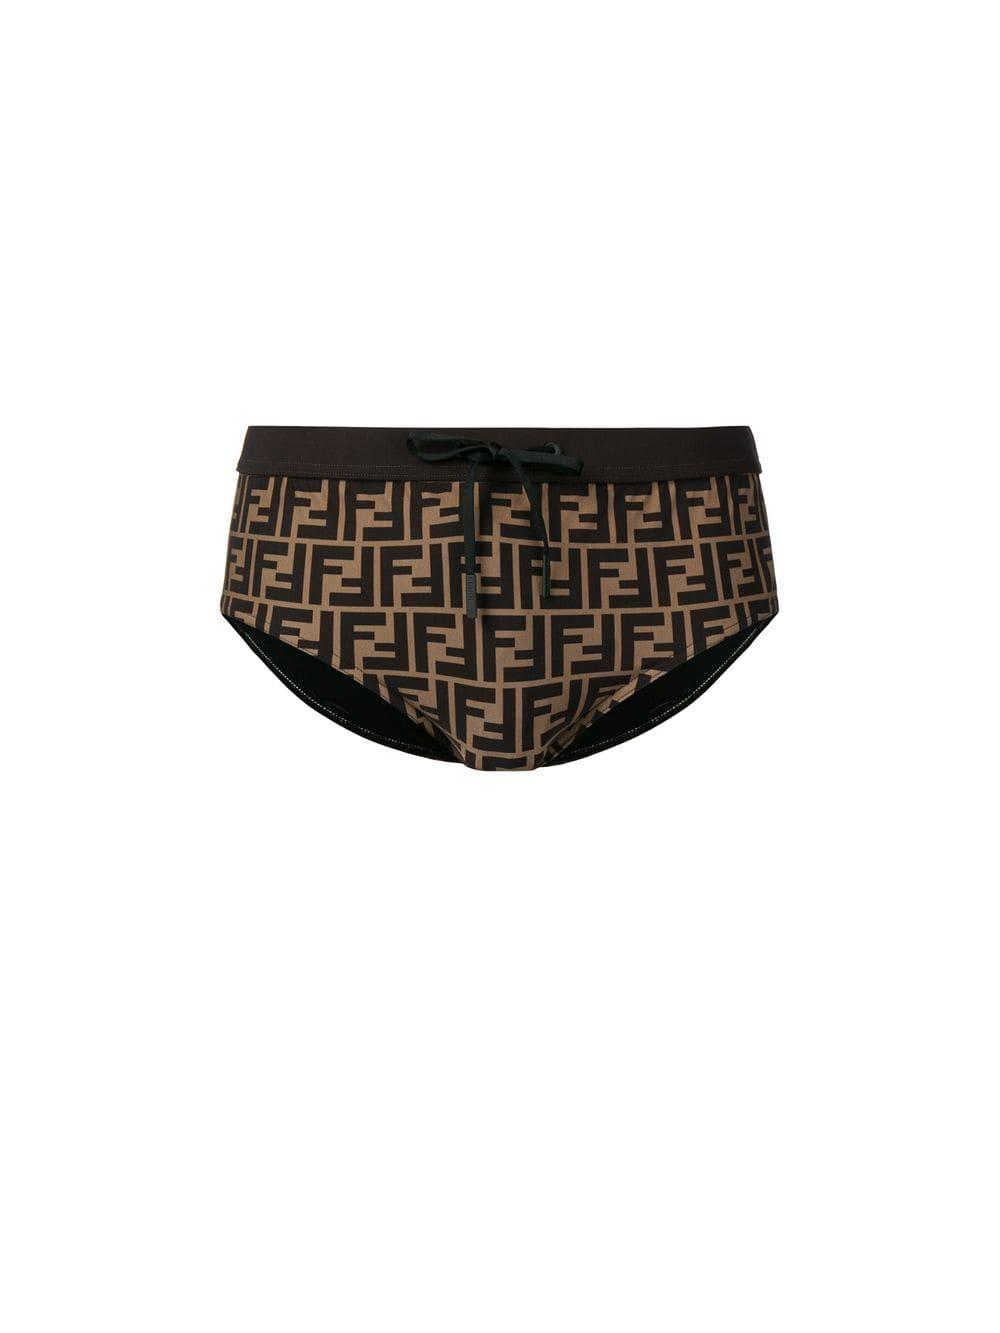 6ed10c5ee6 Fendi Ff Logo Swimming Trunks in Brown for Men - Lyst